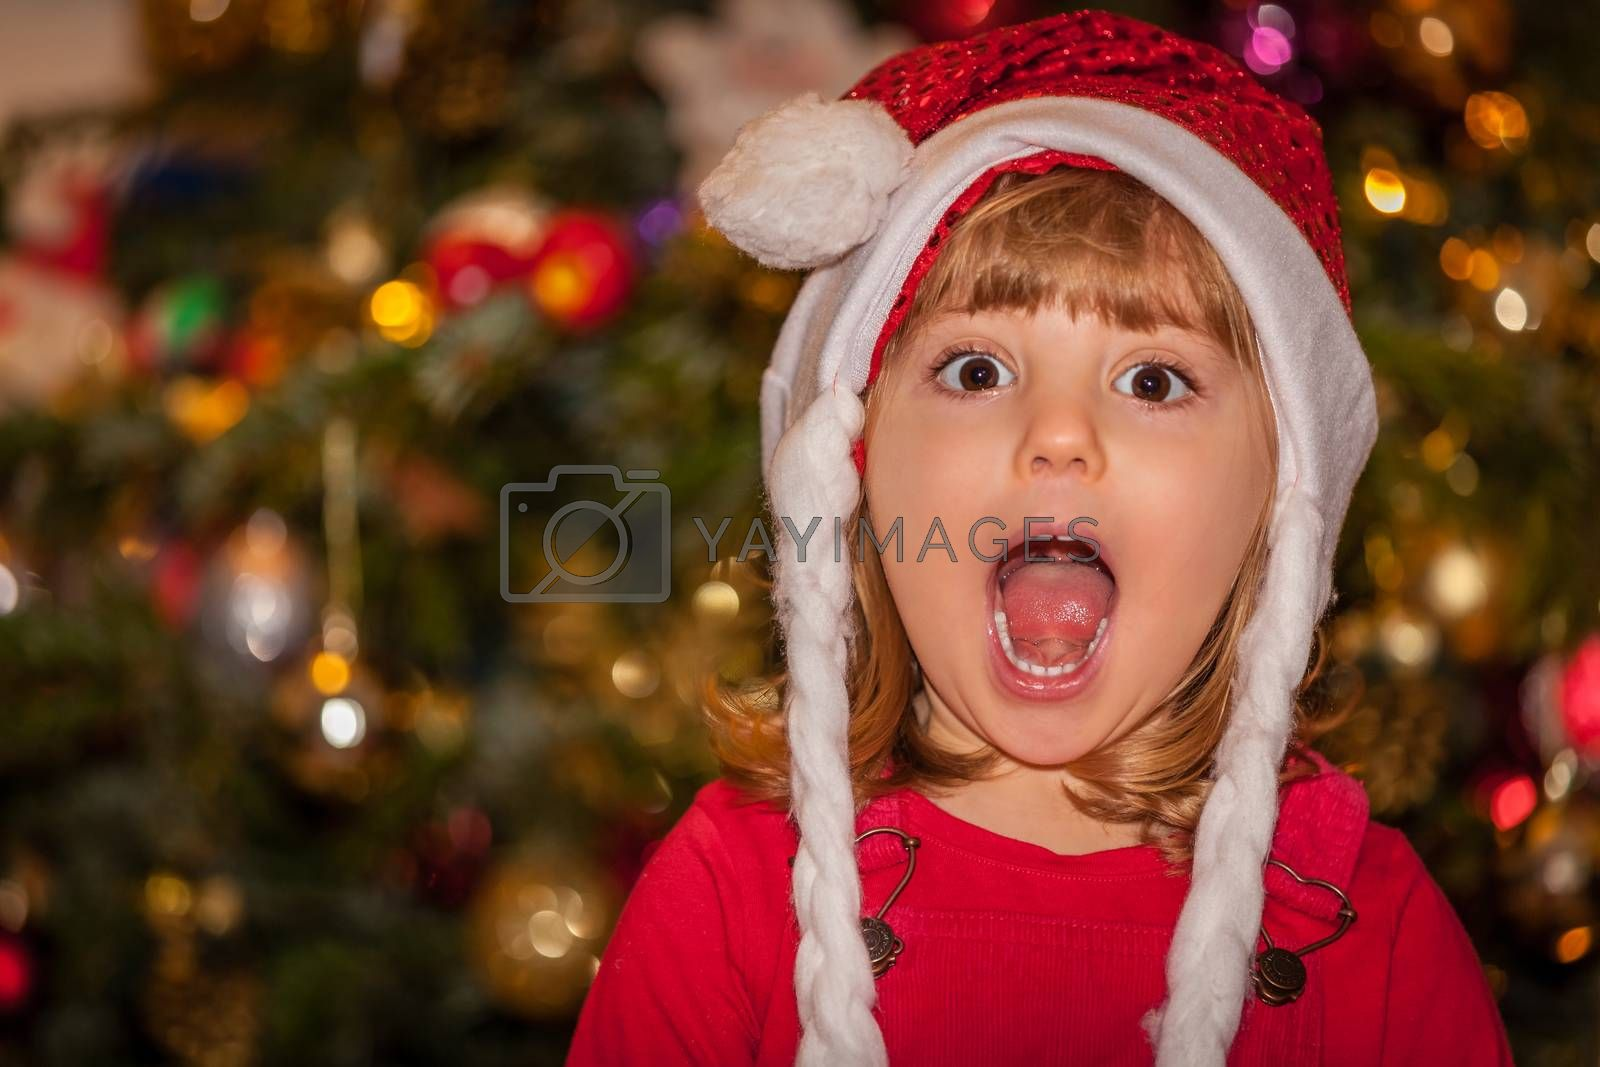 Cute Christmas girl with the Christmas tree in the background